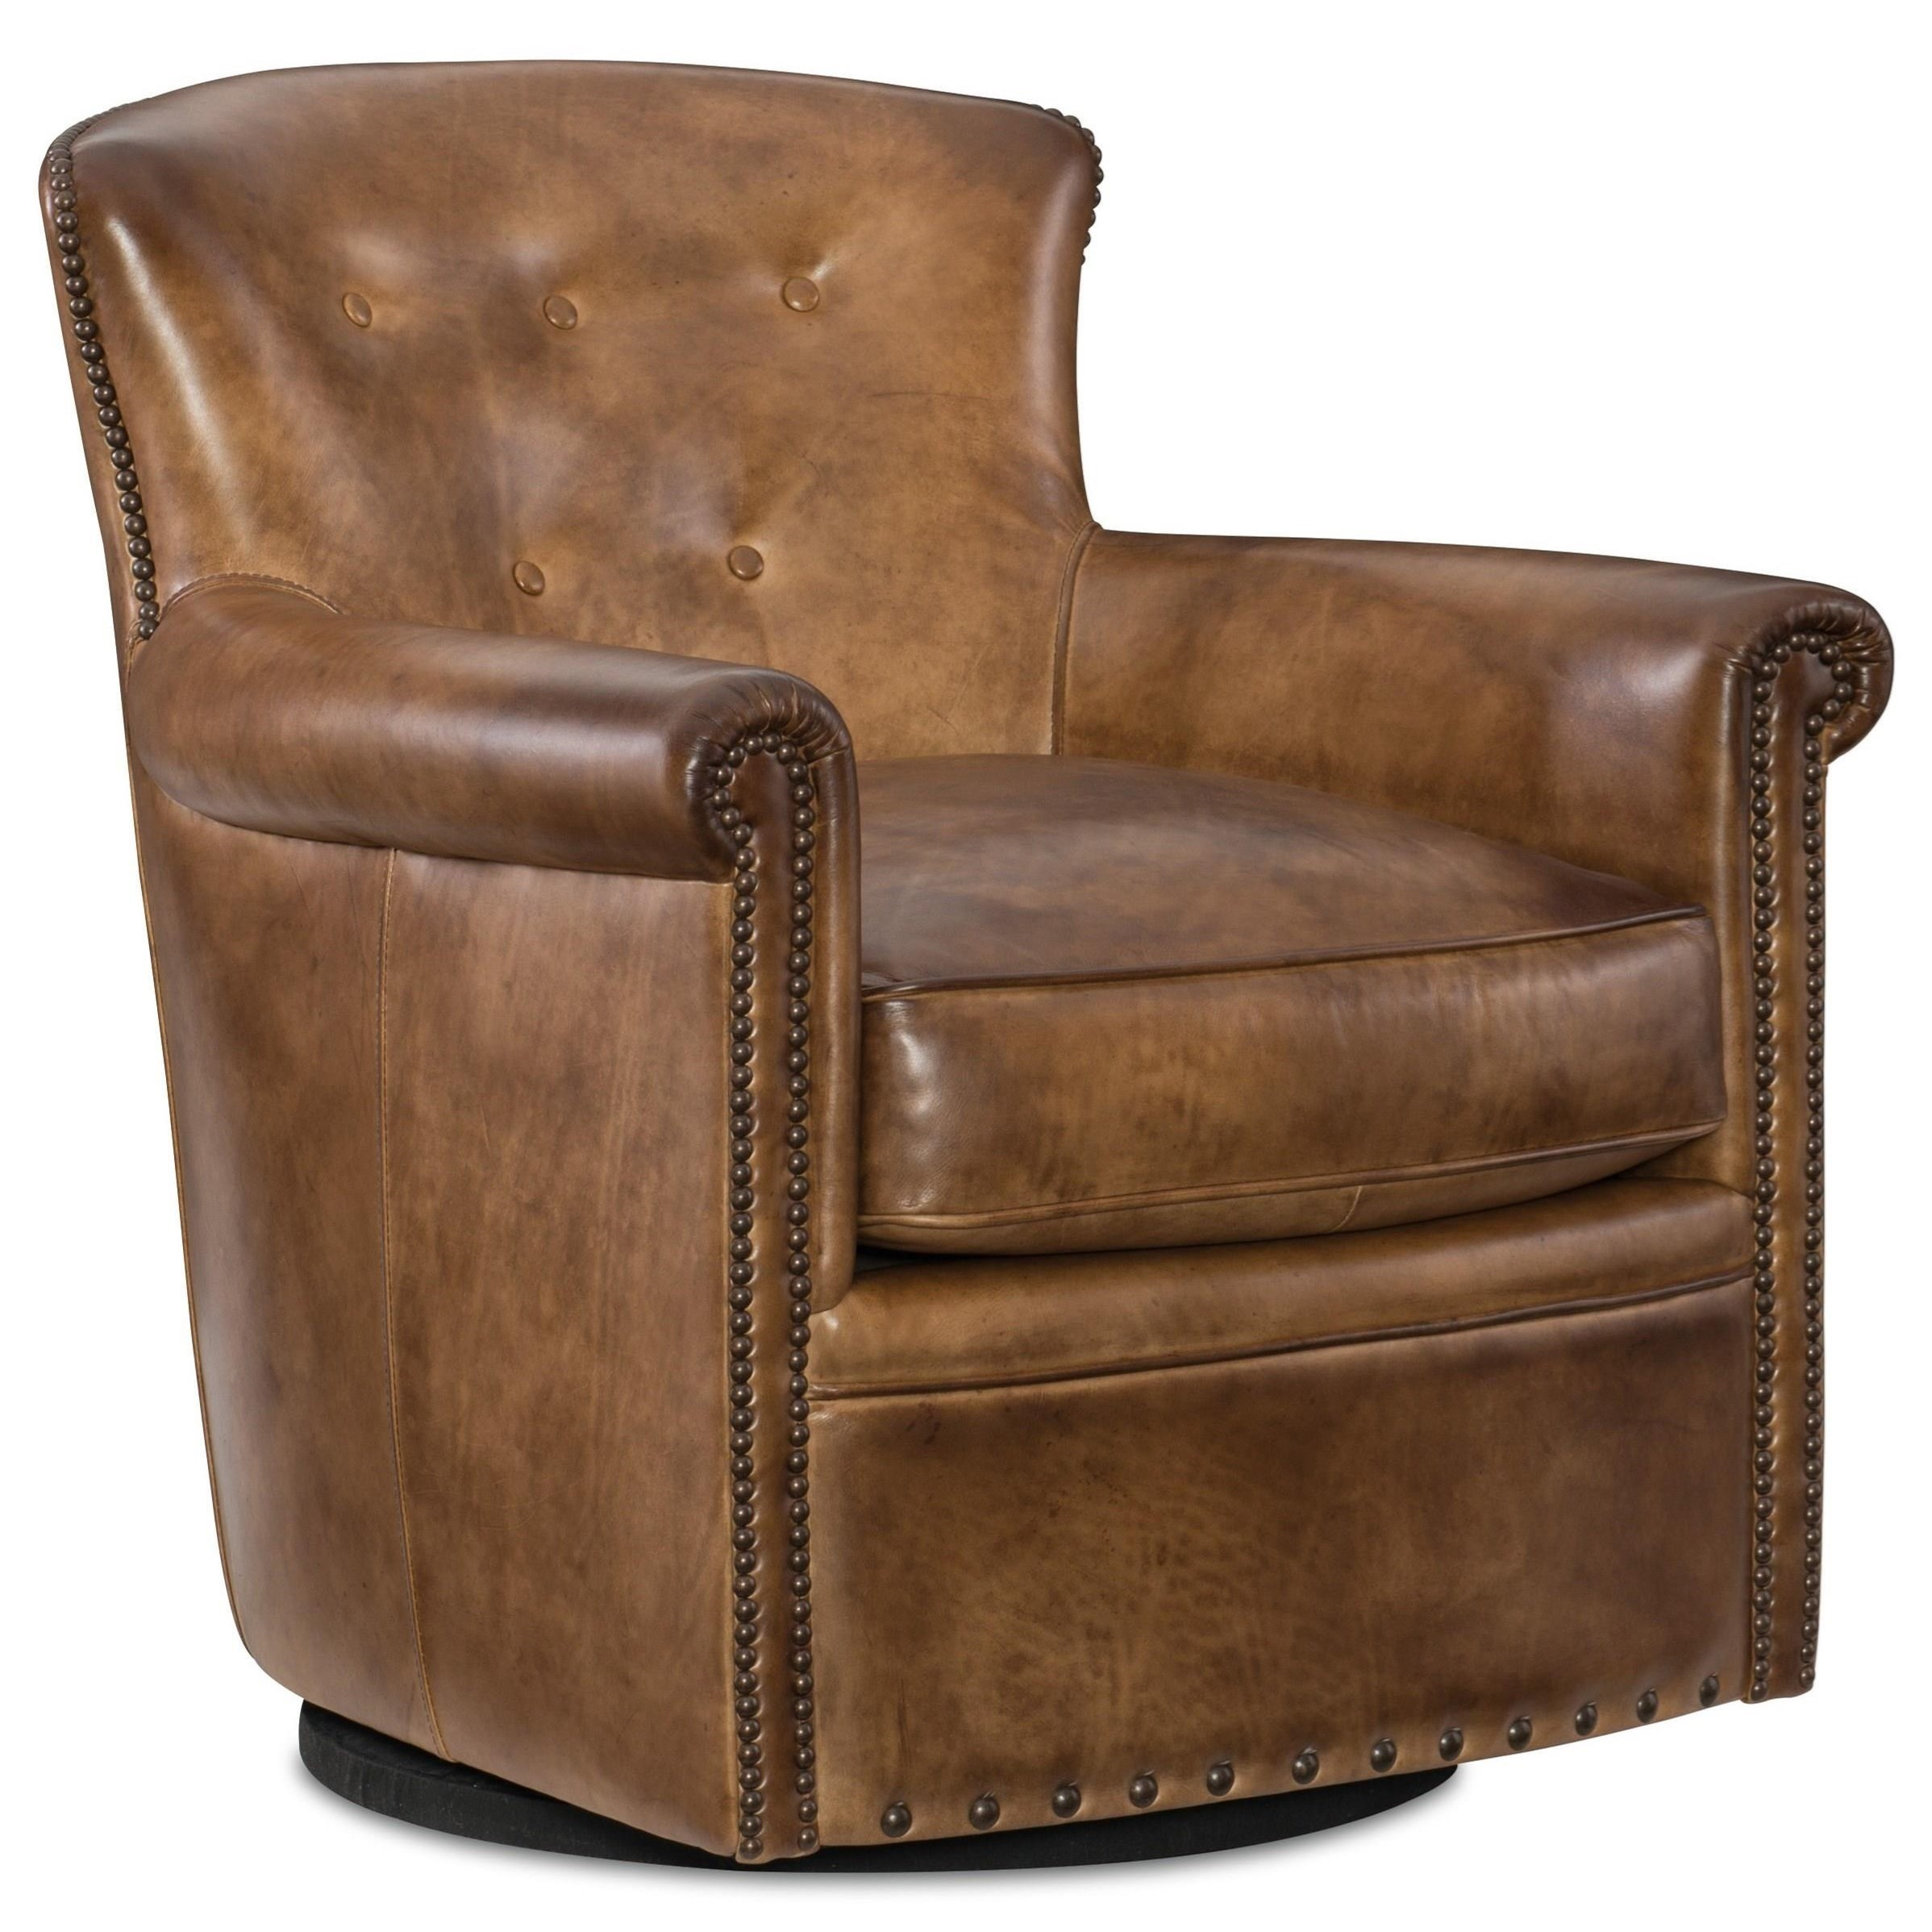 Jacob Swivel Club Chair by Hooker Furniture at Zak's Home